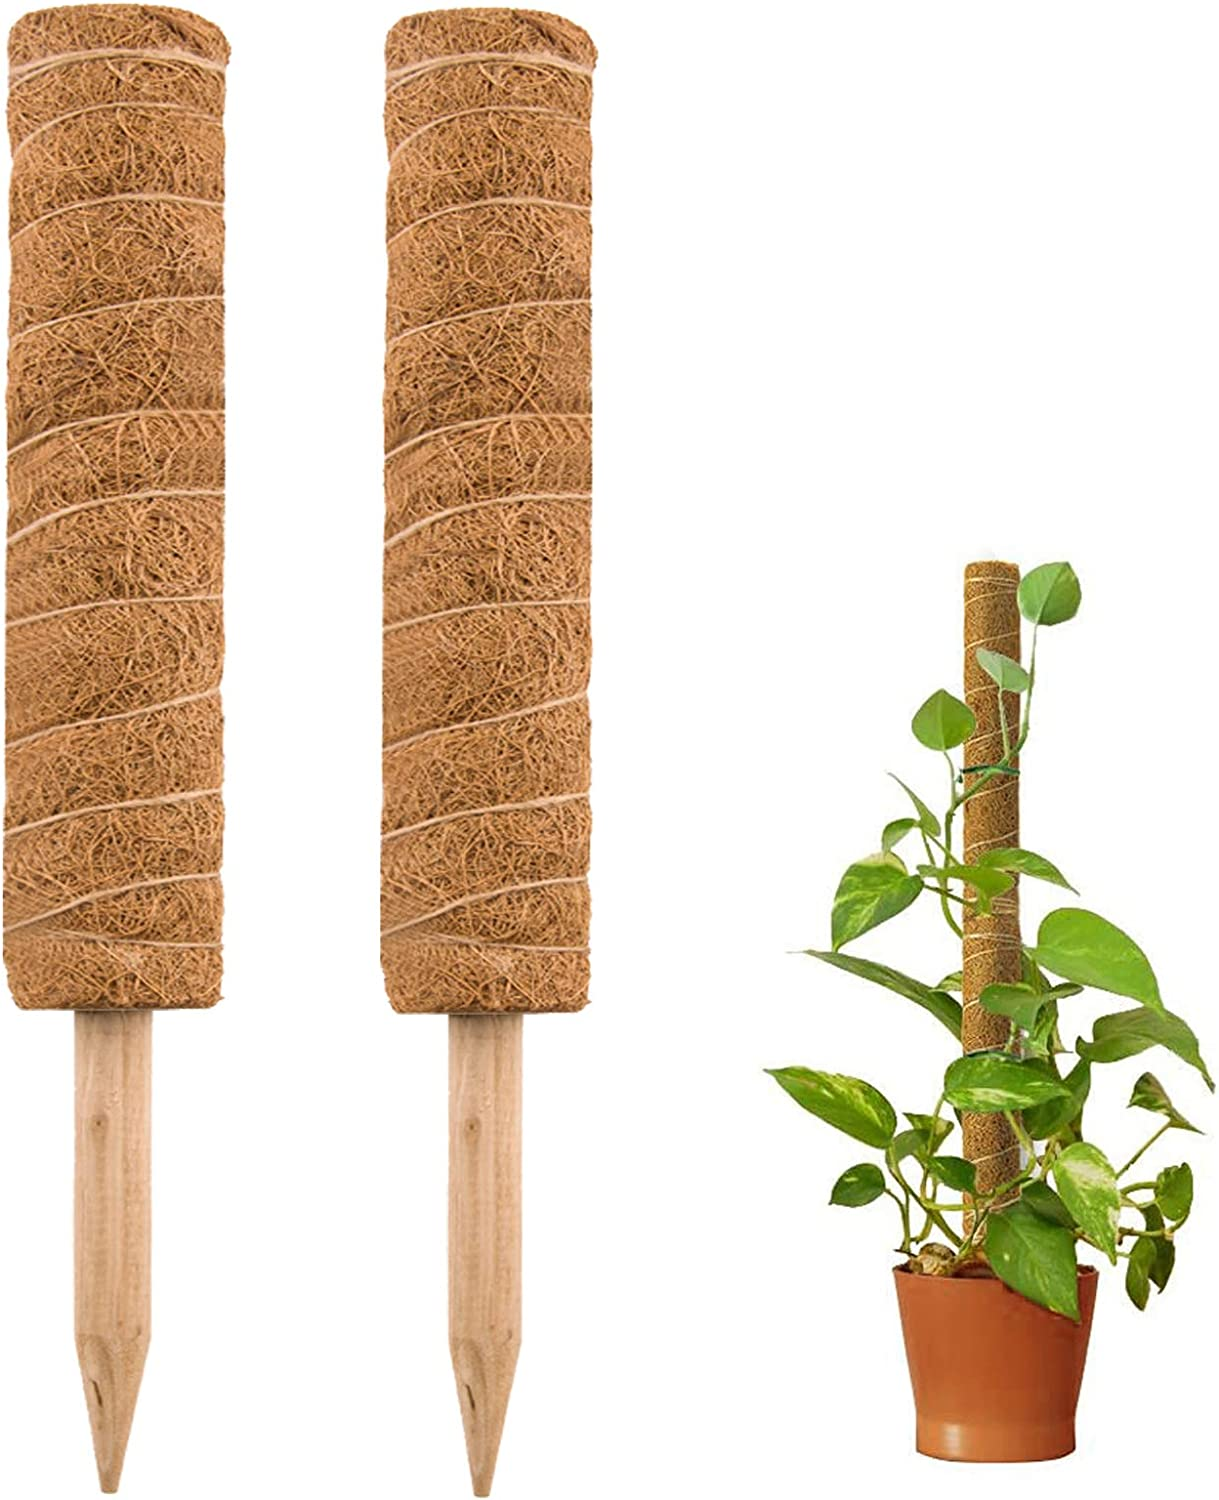 Tingyuan Moss Pole 17.7 inch Coir Totem Pole Stick Plant Support for Monstera and Climbing Plants (2 Pack)